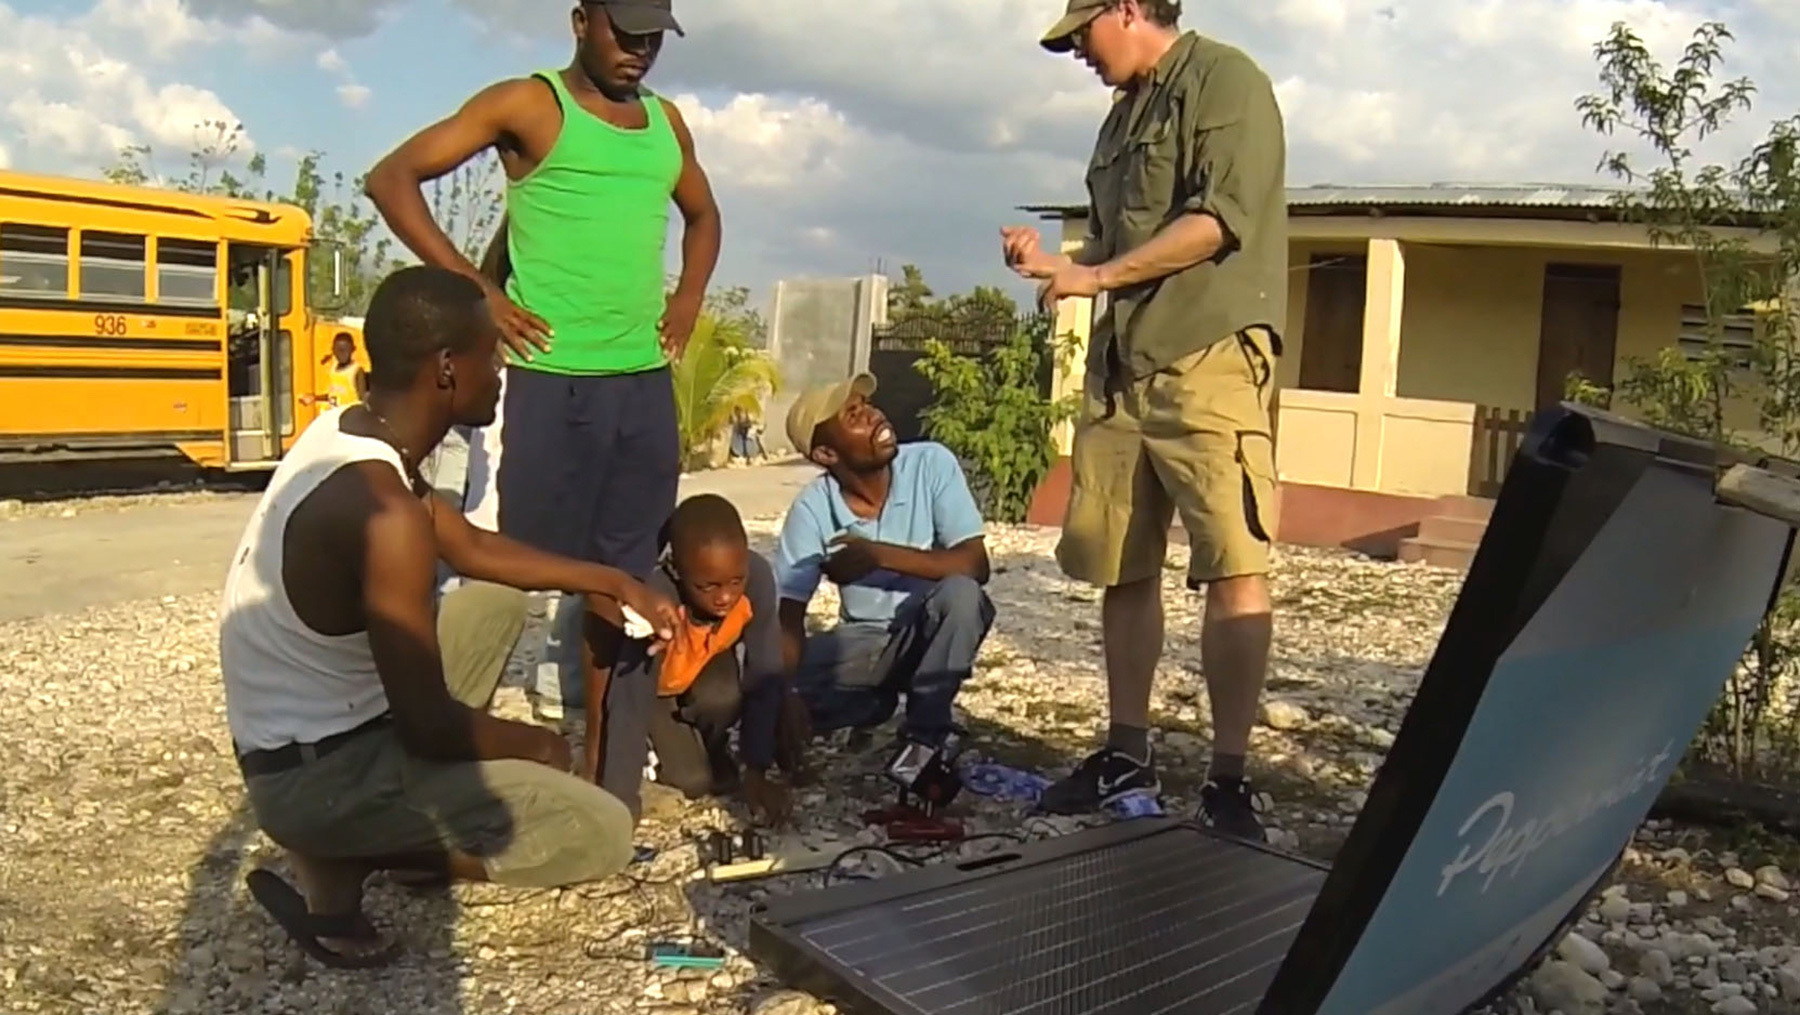 The FORTY2 brings reliable electricity to developing areas around the world including Haiti. (Photo: Stratasys)